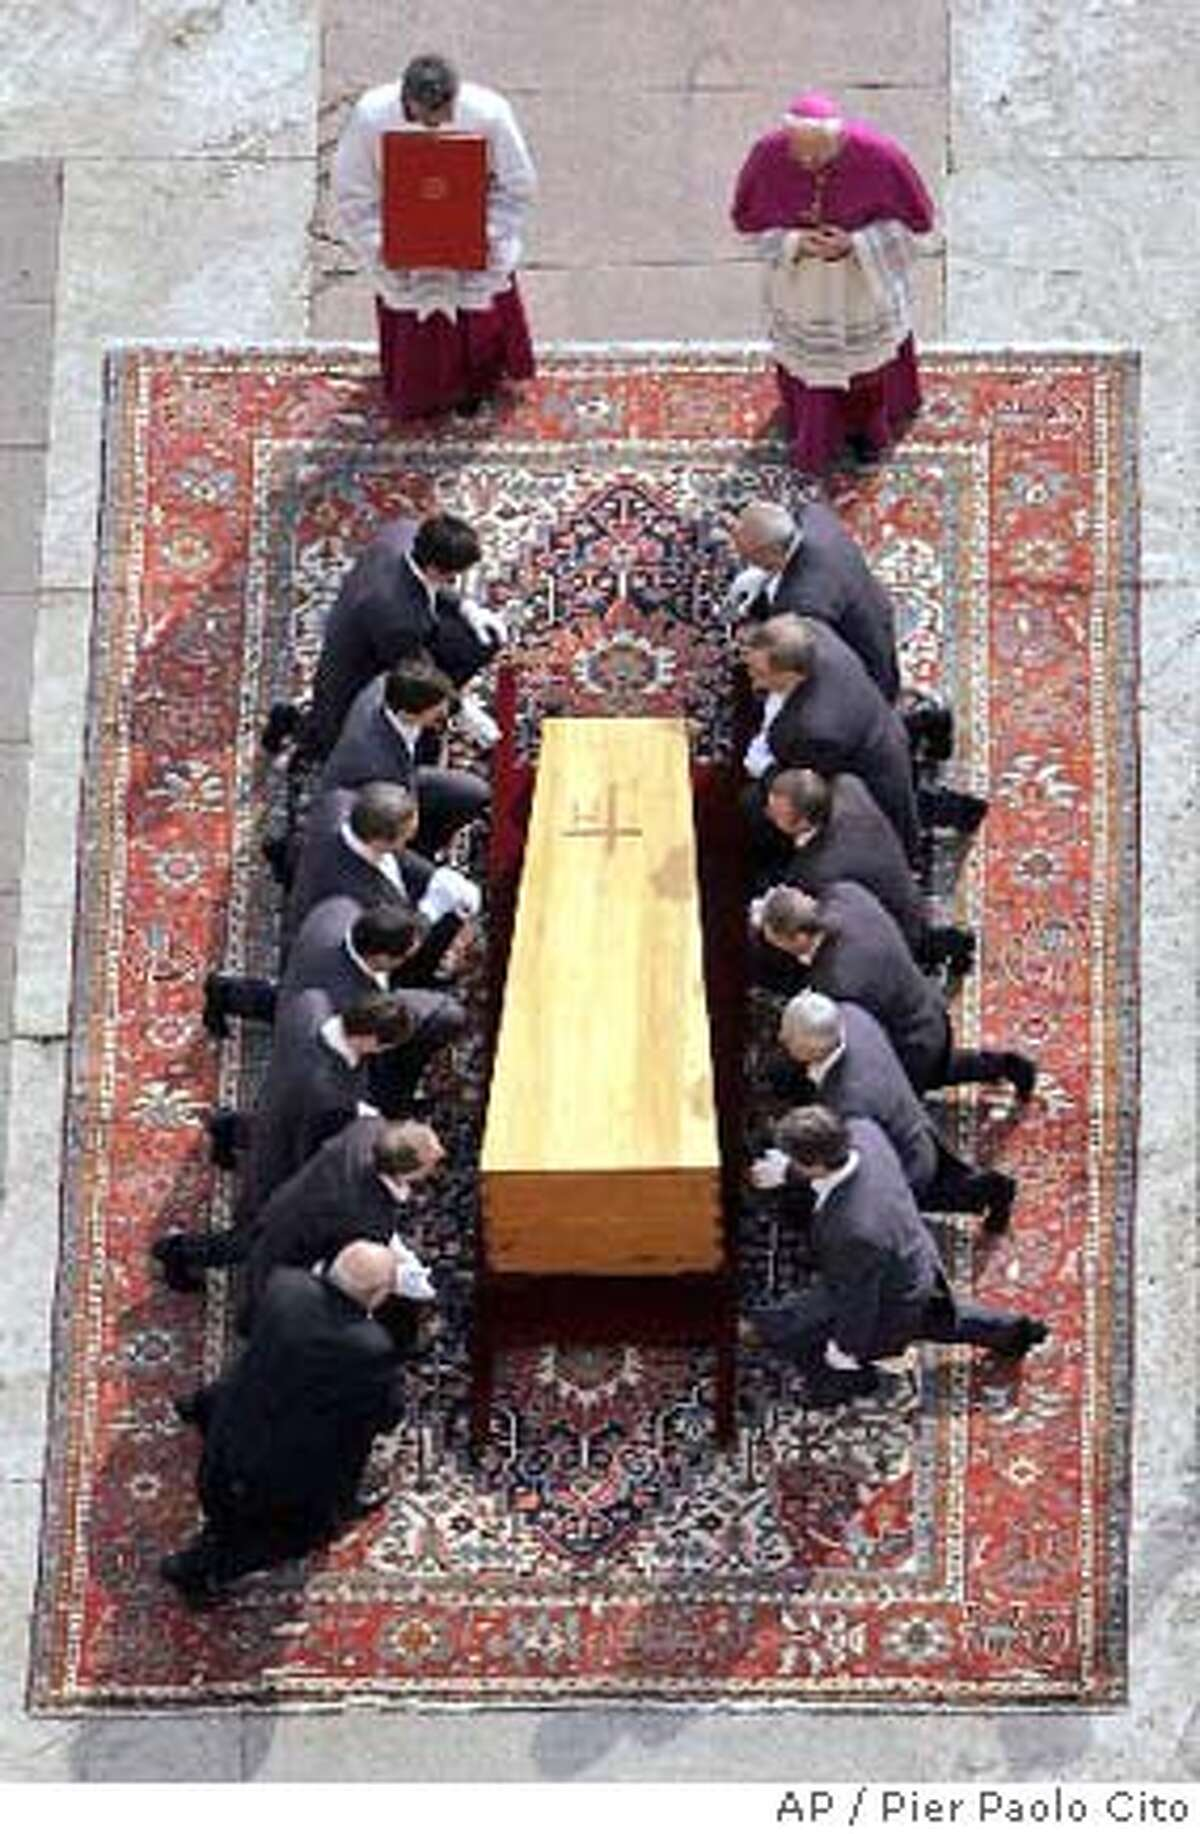 Pallbearers kneel by the coffin of Pope John Paul II during the funerals at the Vatican, Friday, April 8, 2005. Tens of thousands of people jammed St. Peter's Square to say a final farewell to Pope John Paul II in the presence of kings, queens, presidents and prime ministers for a funeral capping one of the largest religious gatherings in the West in modern times. AP Photo / Pier Paolo Cito